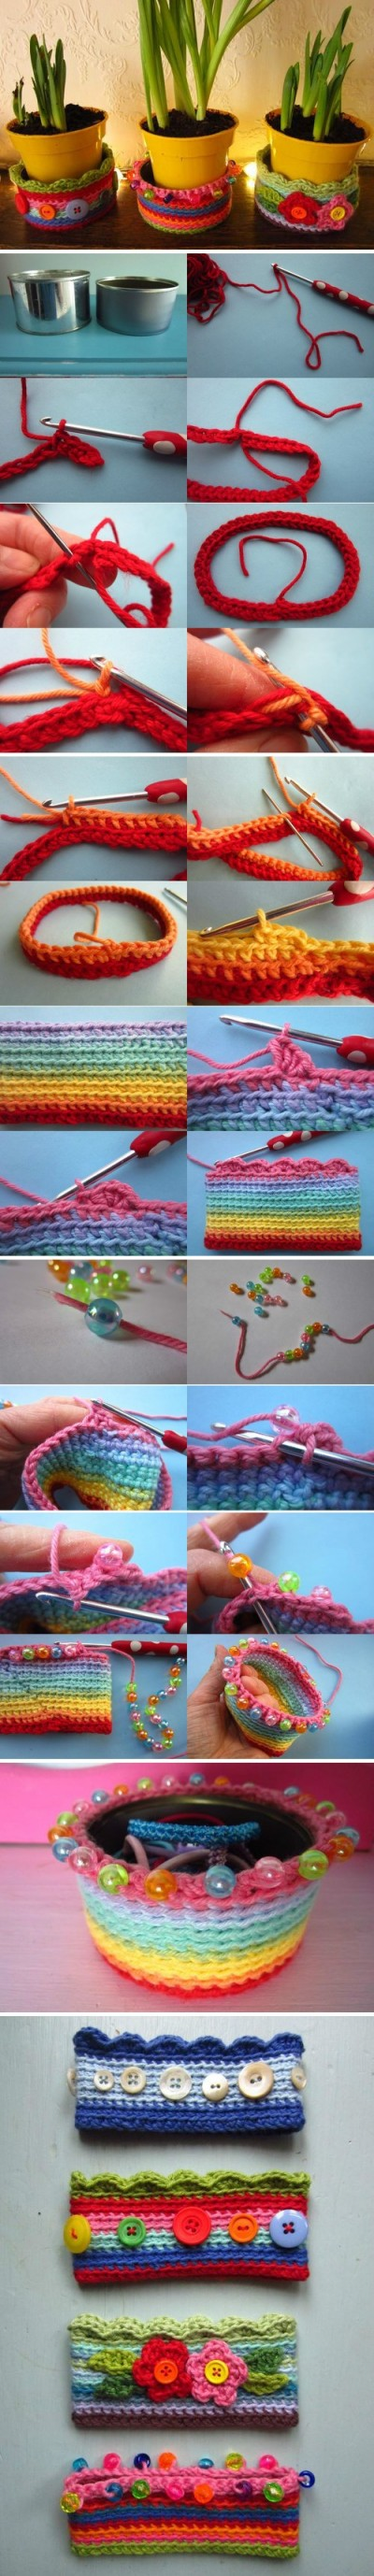 How to knit lovely basket step by step DIY tutorial picture instructions